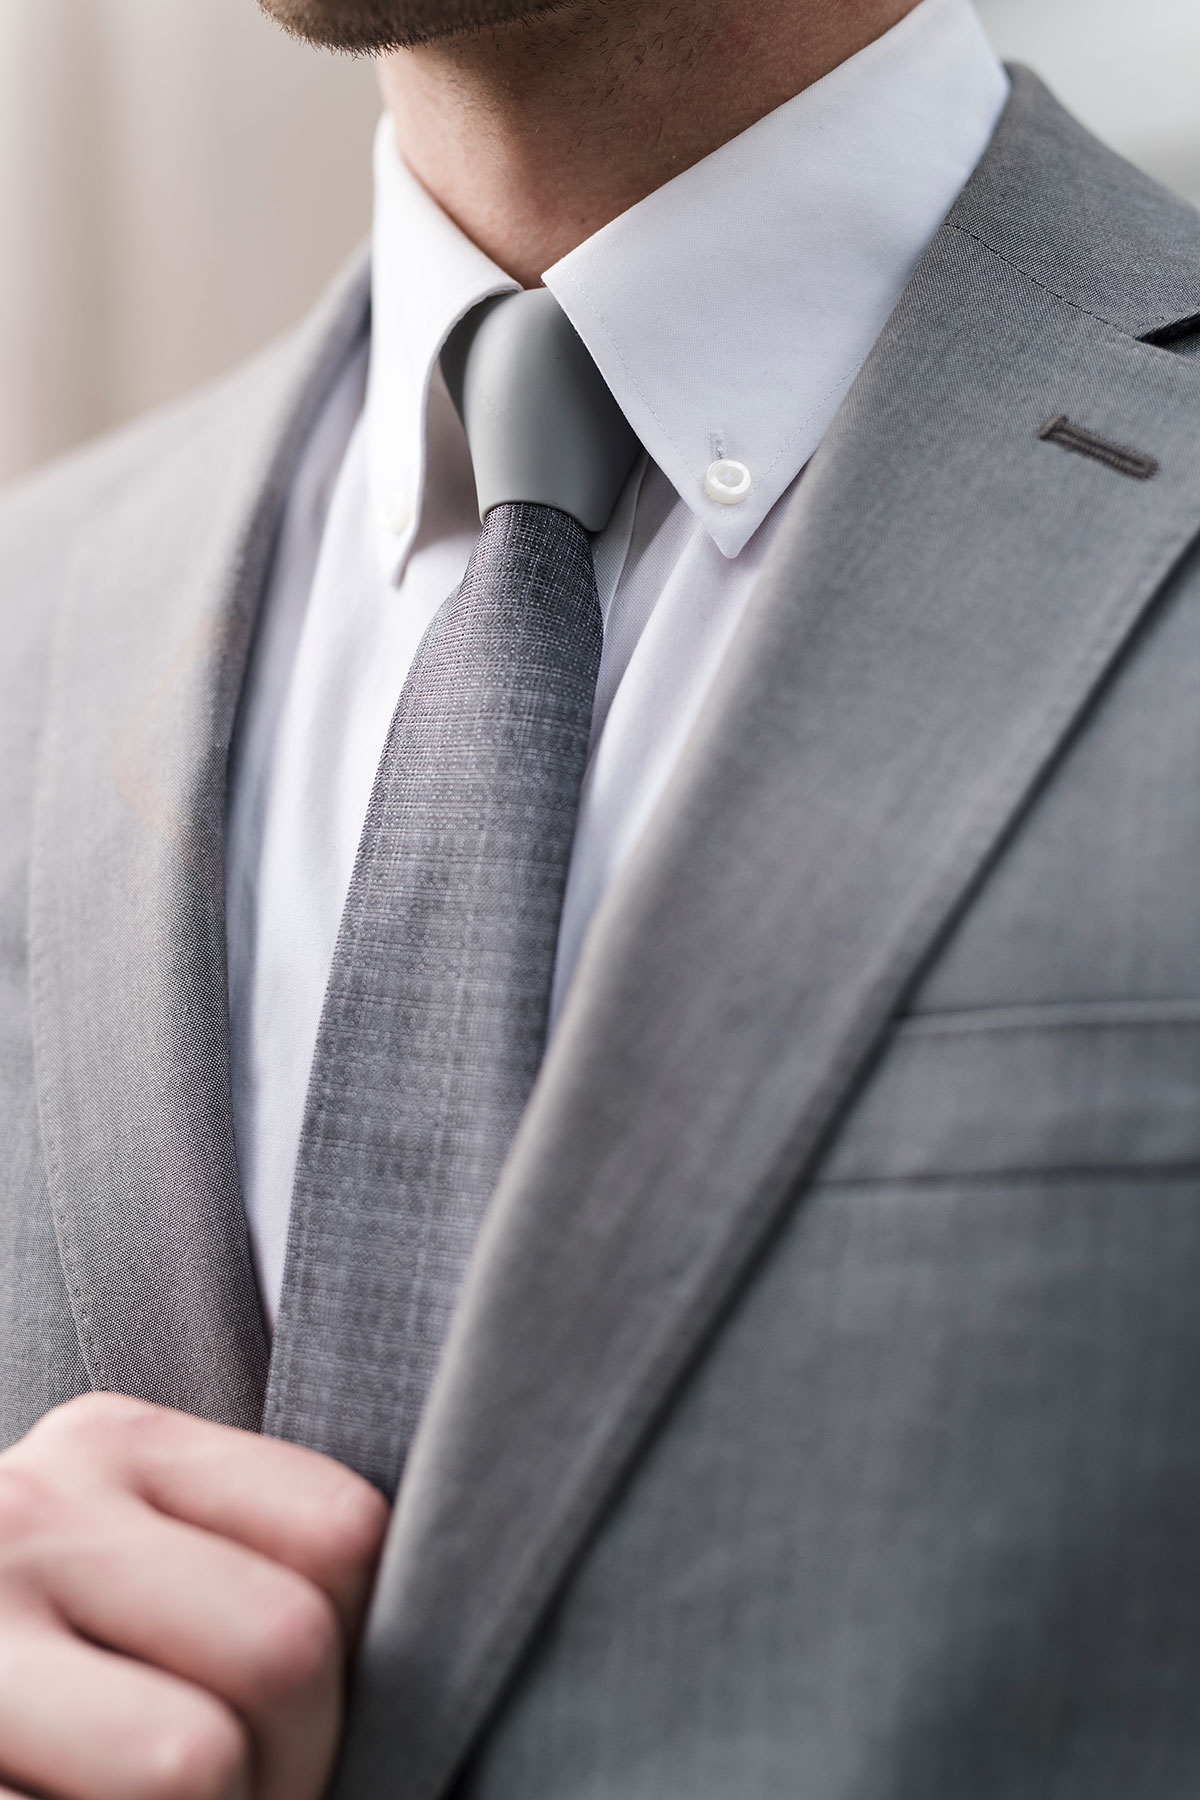 Modern Magnetic Necktie Article Image 3